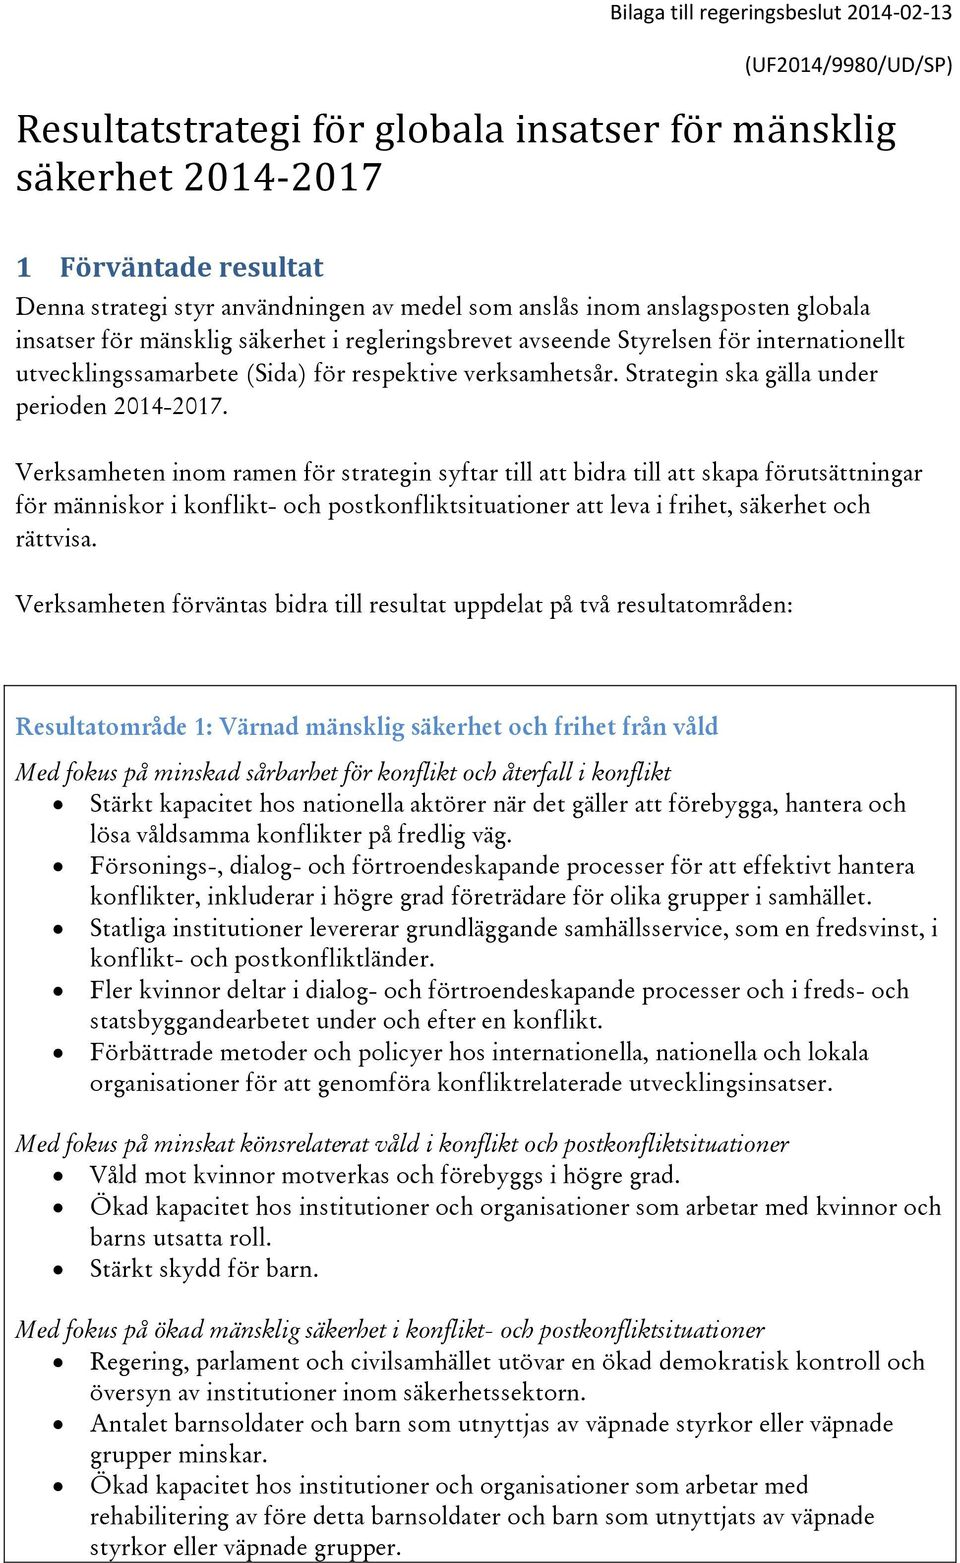 Strategin ska gälla under perioden 2014-2017.